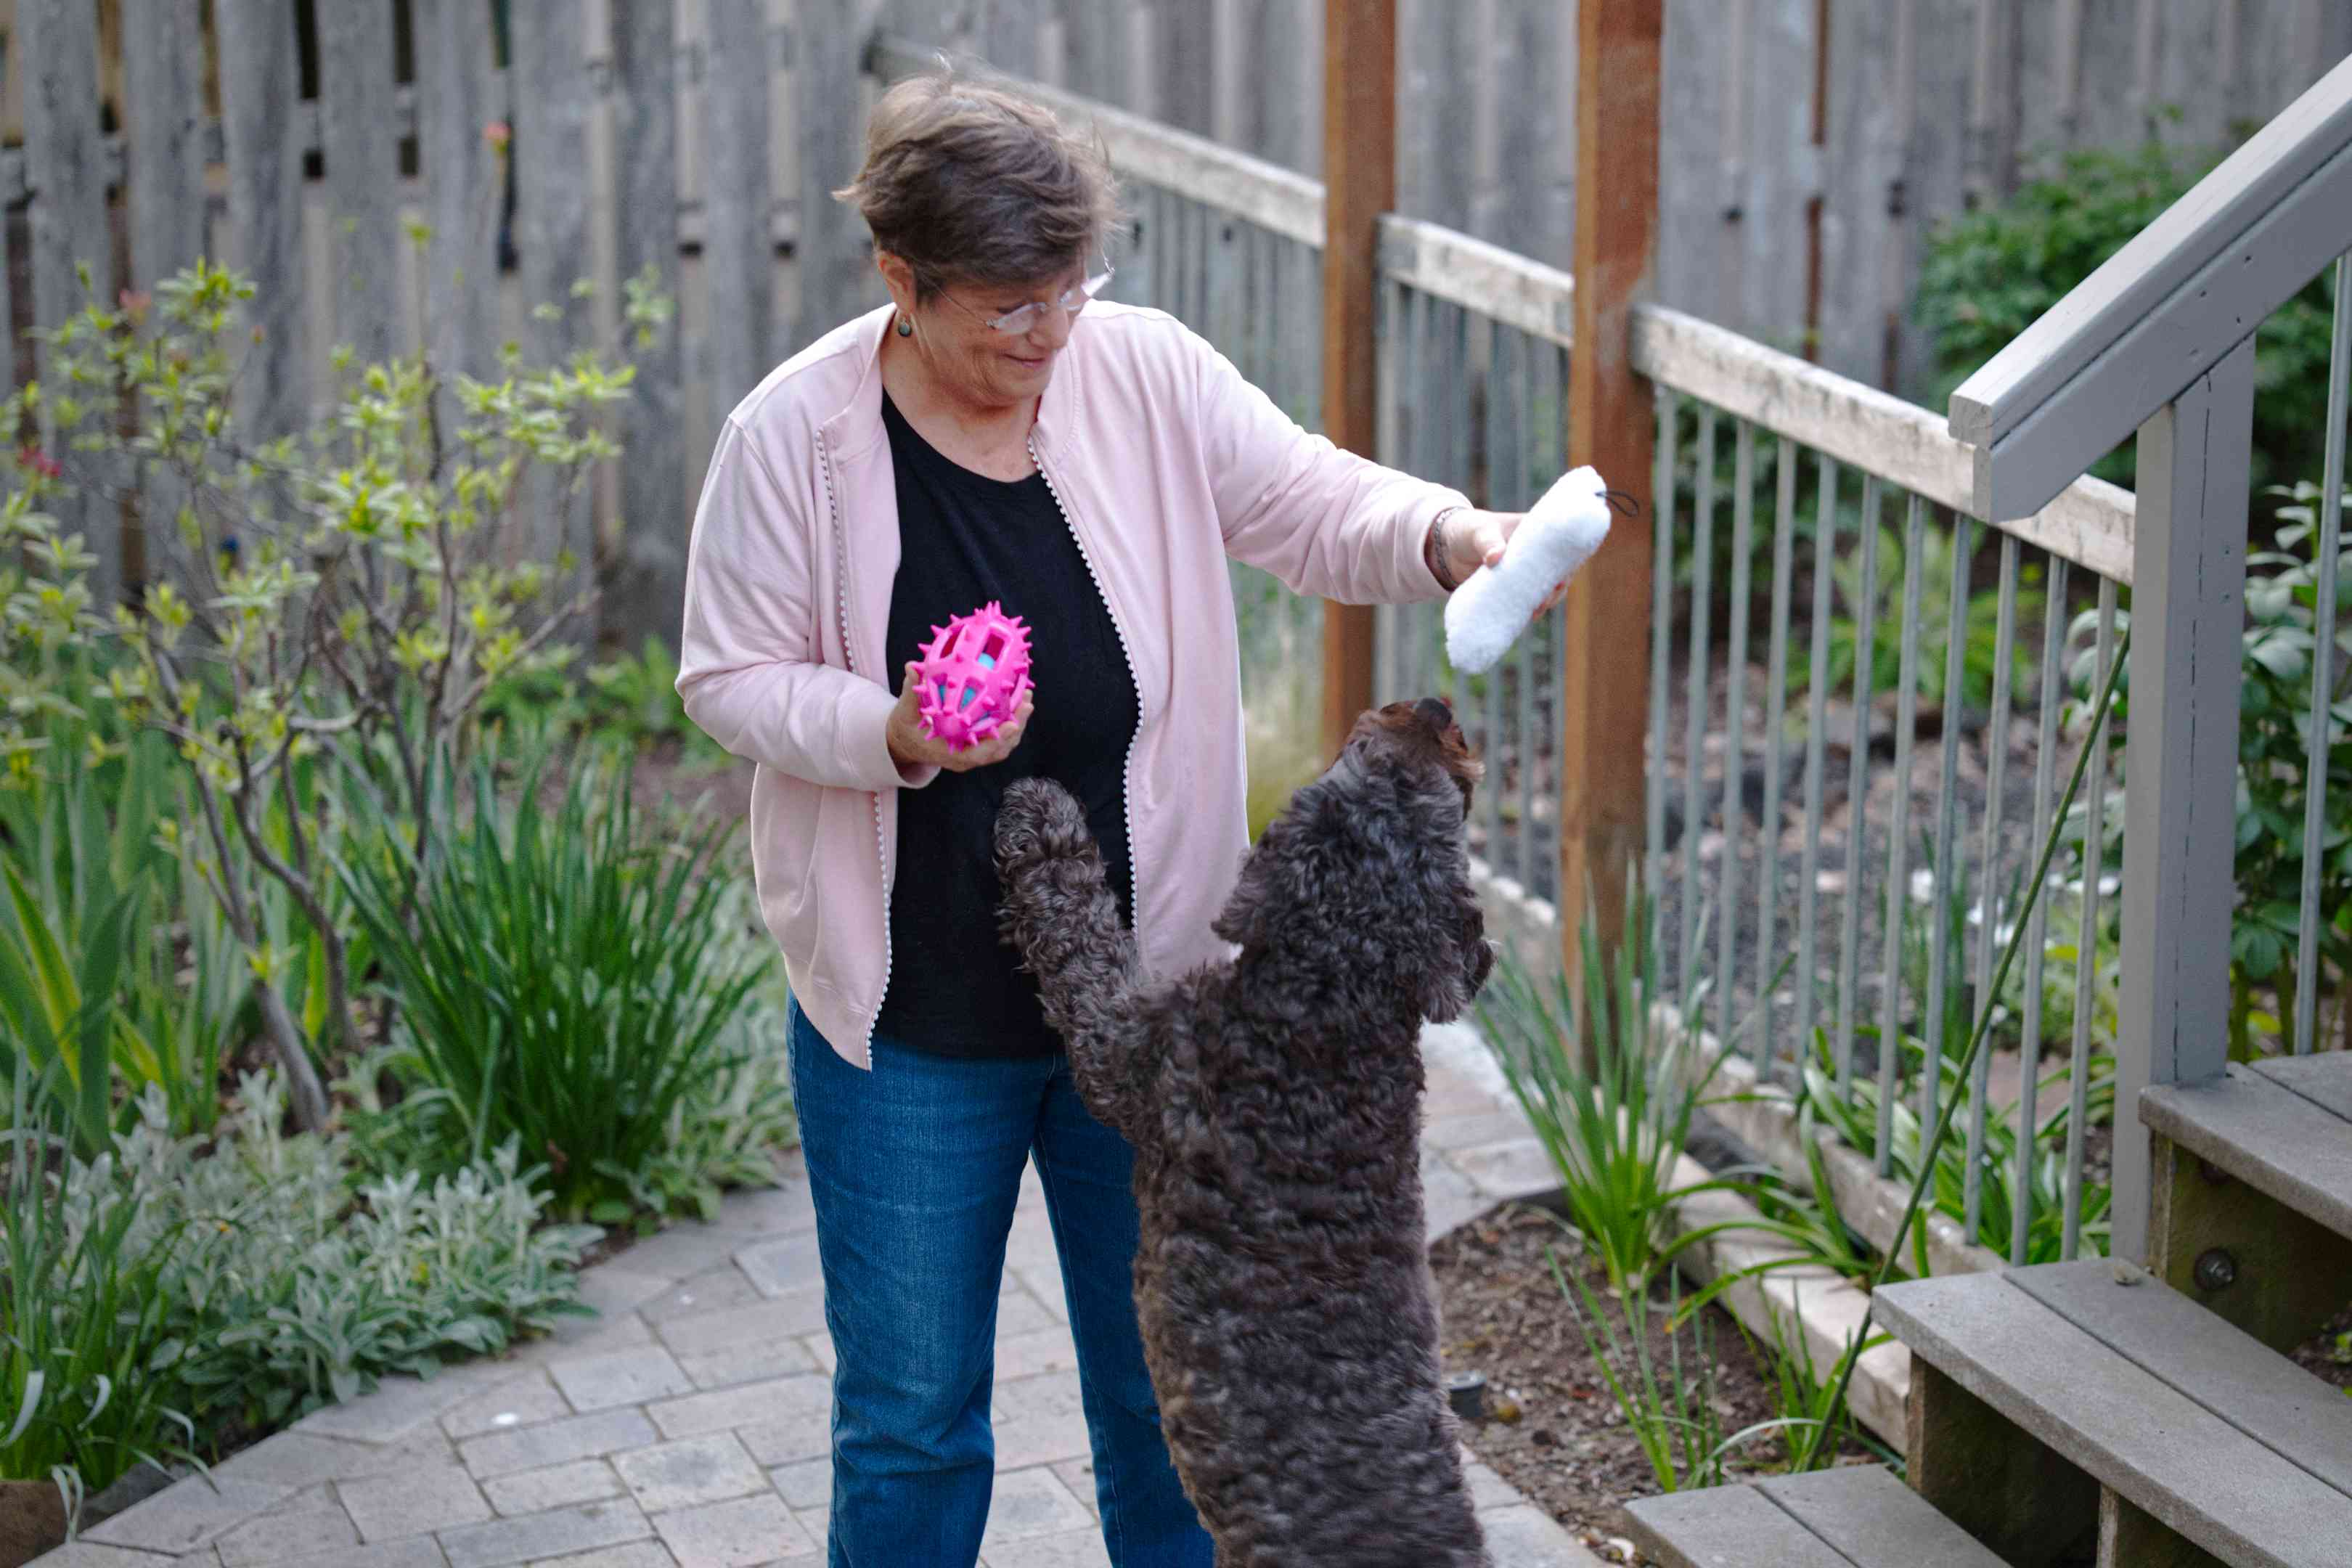 older woman in backyard holds dog toys out to gray curly-haired dog jumping up